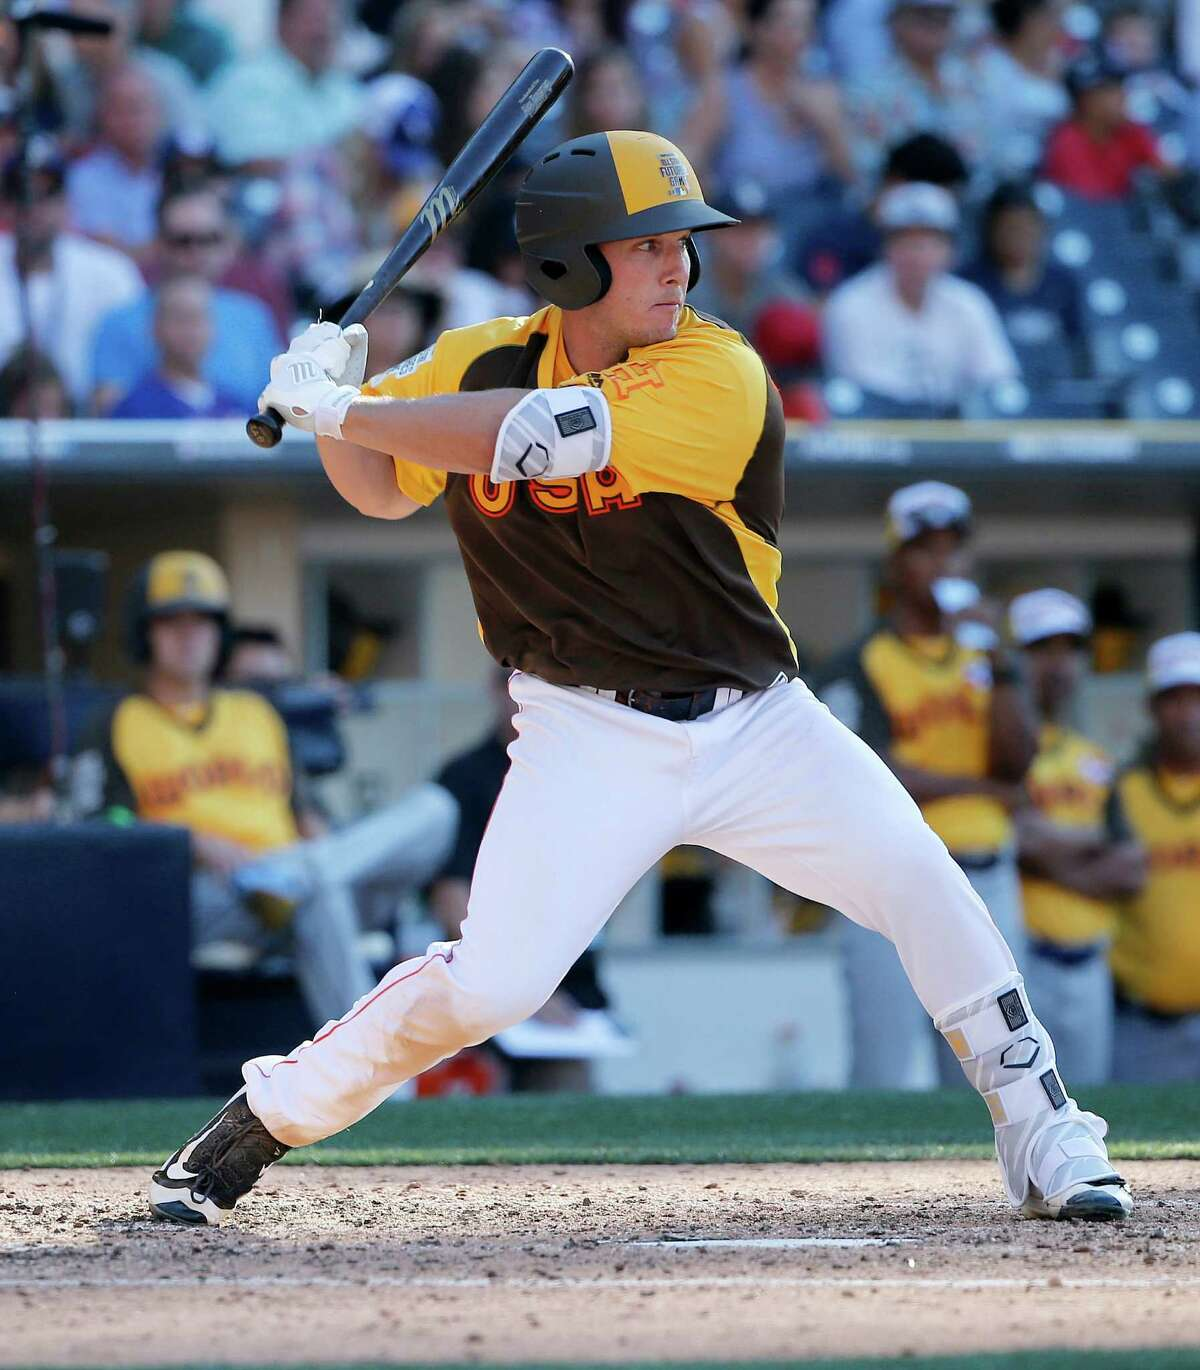 U.S. Team's Alex Bregman, of the Houston Astros, hits during the seventh inning of the All-Star Futures baseball game, Sunday, July 10, 2016, in San Diego. (AP Photo/Lenny Ignelzi)